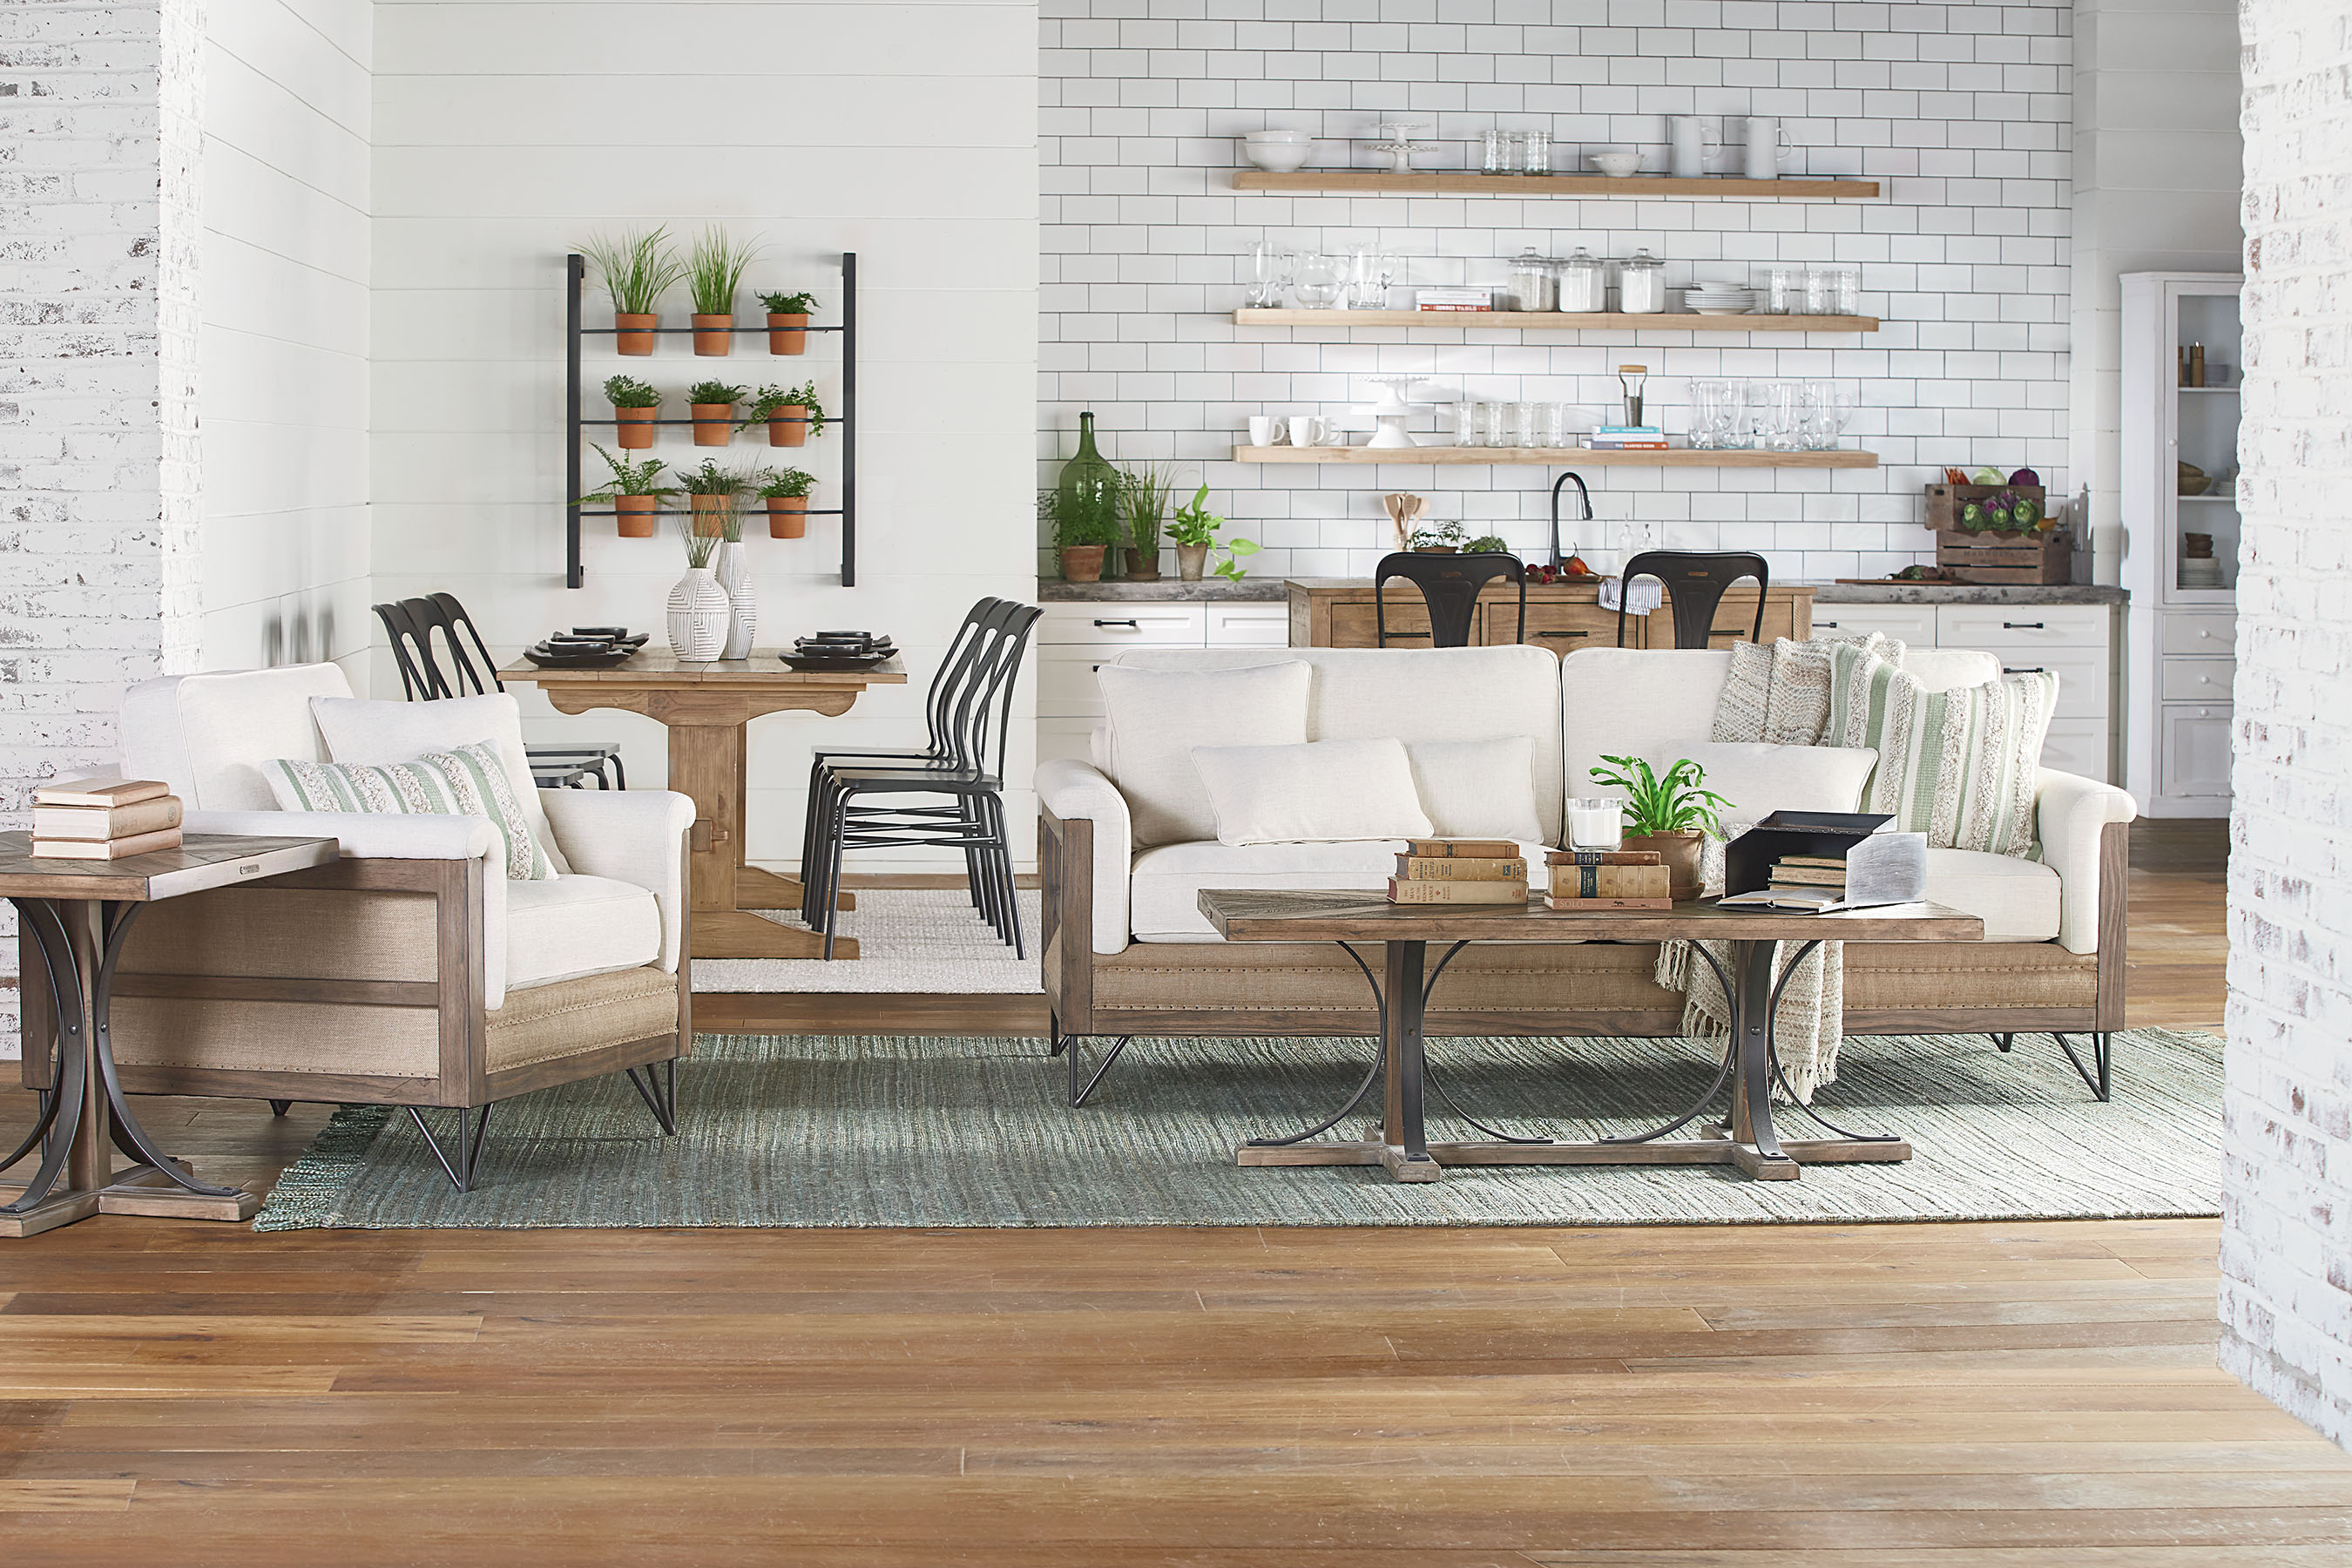 Paradigm Sofa – Magnolia Home Regarding Magnolia Home Paradigm Sofa Chairs By Joanna Gaines (View 2 of 20)